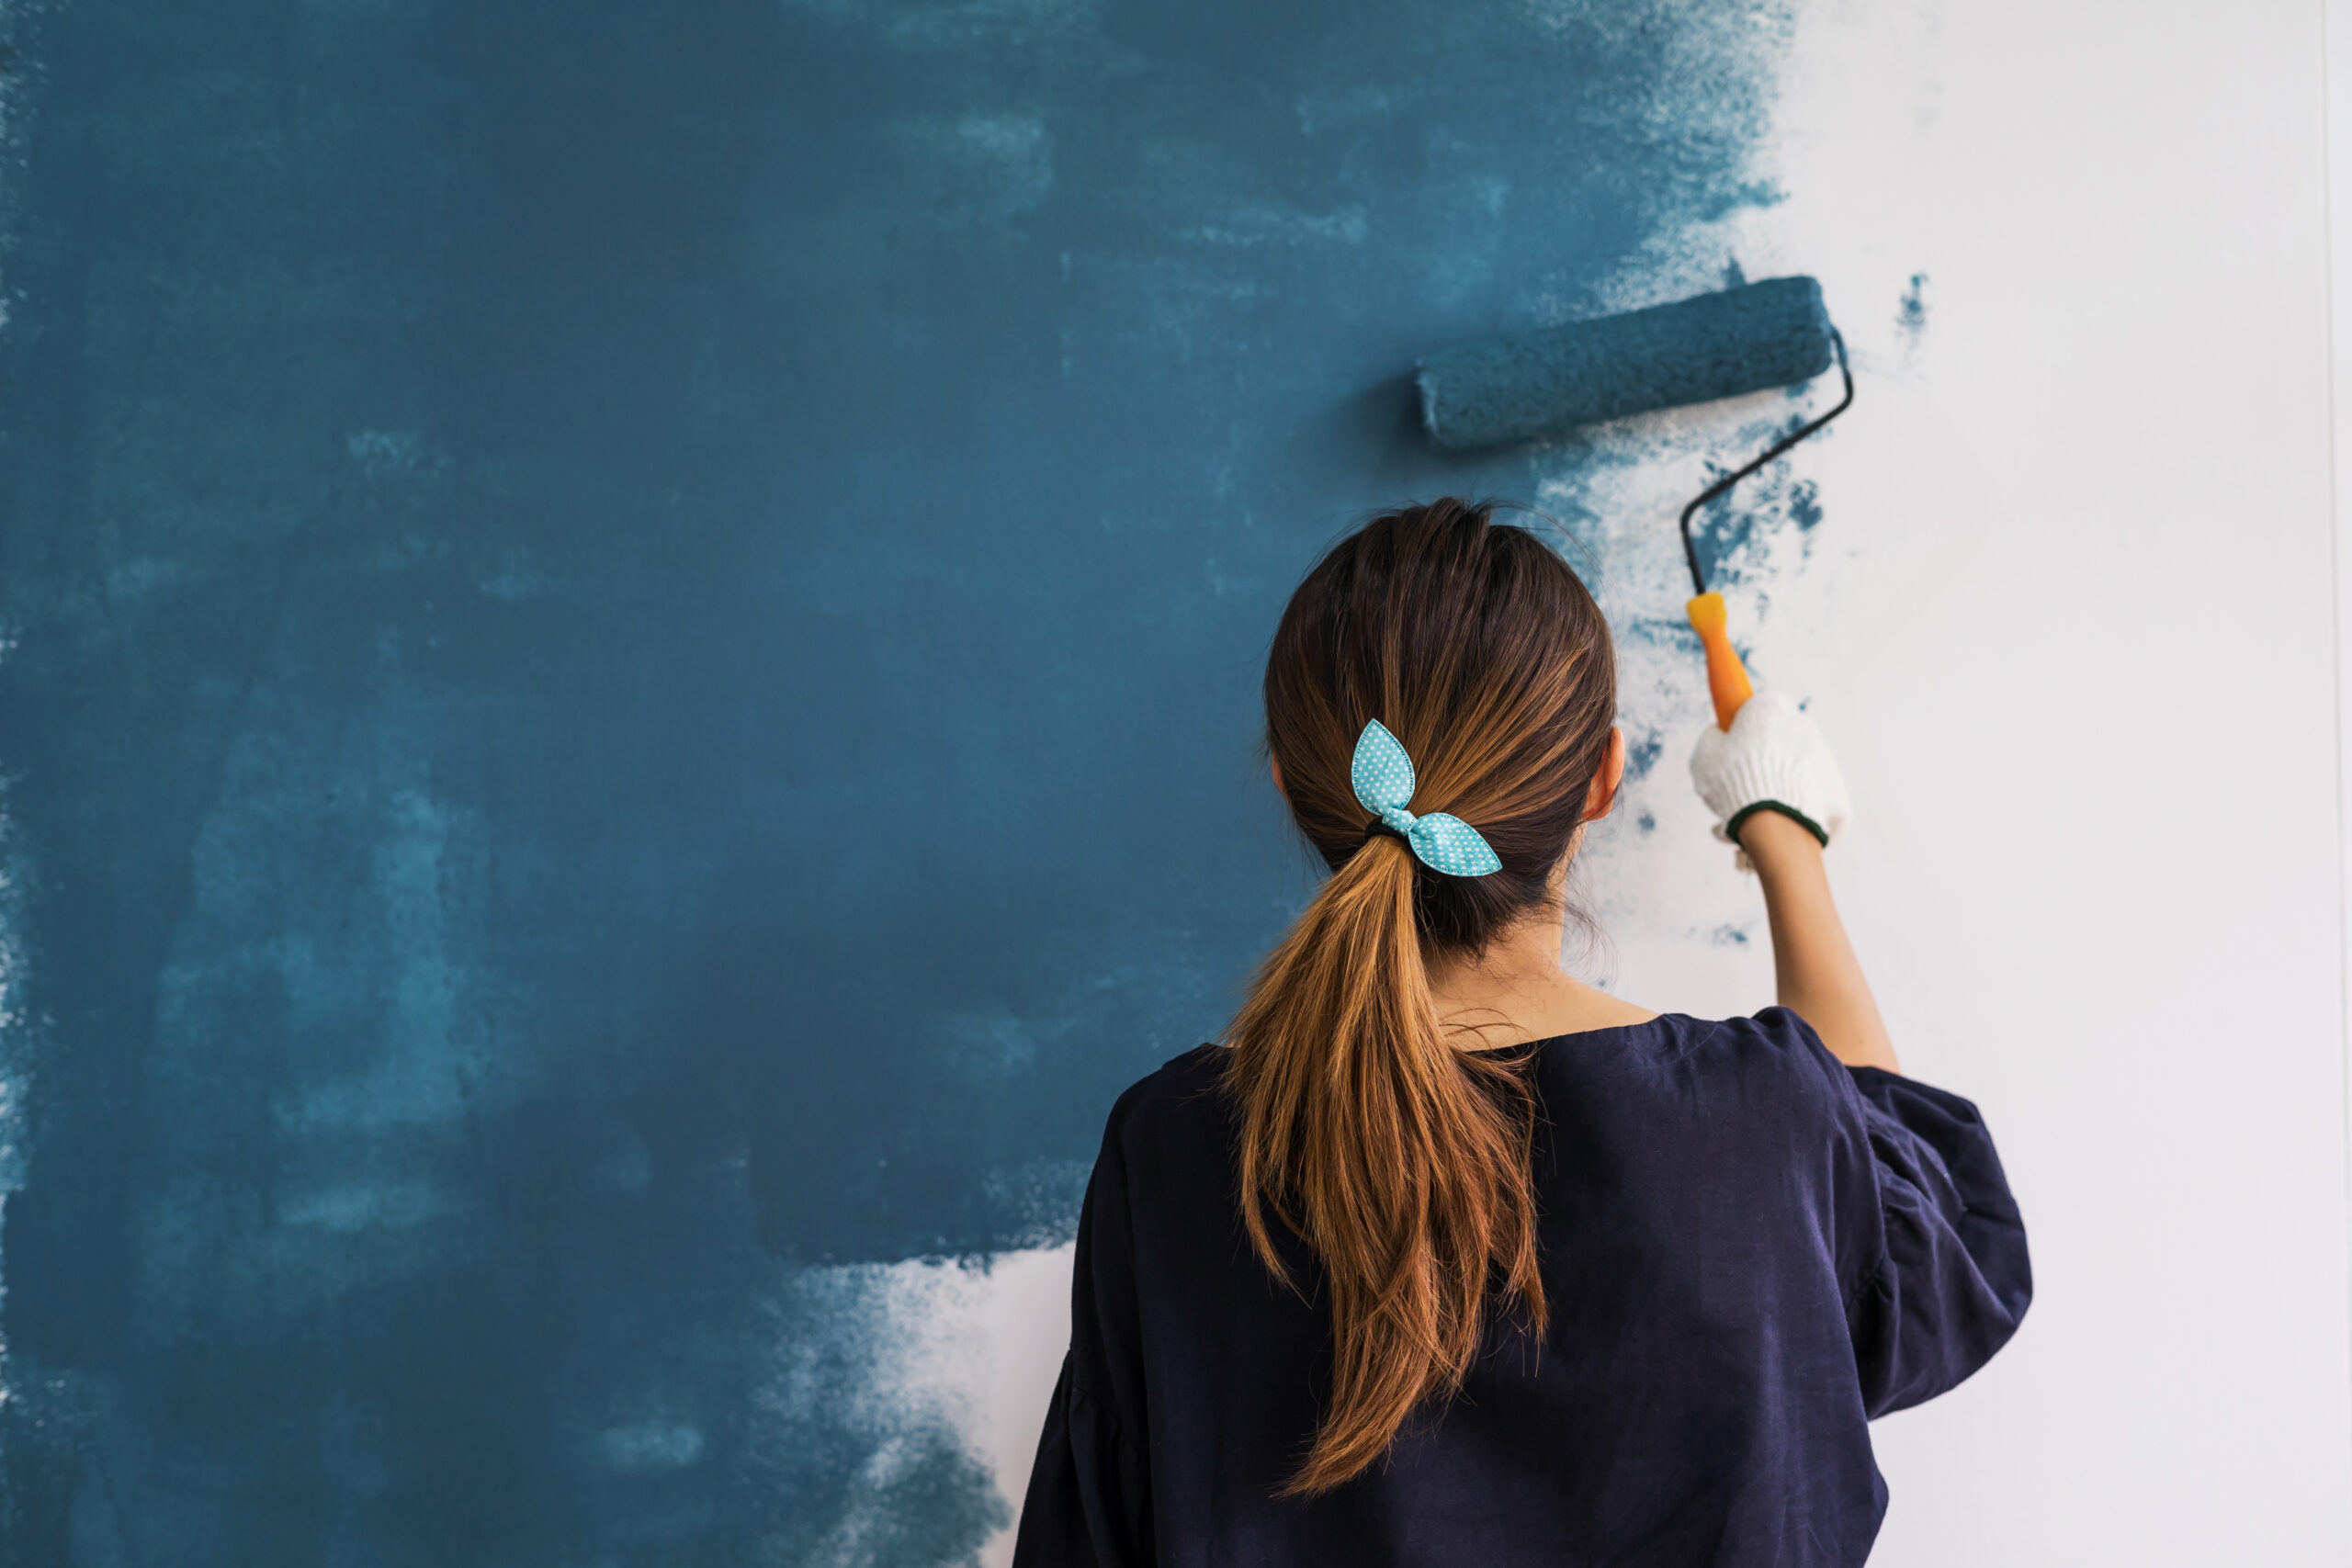 Repaint the house